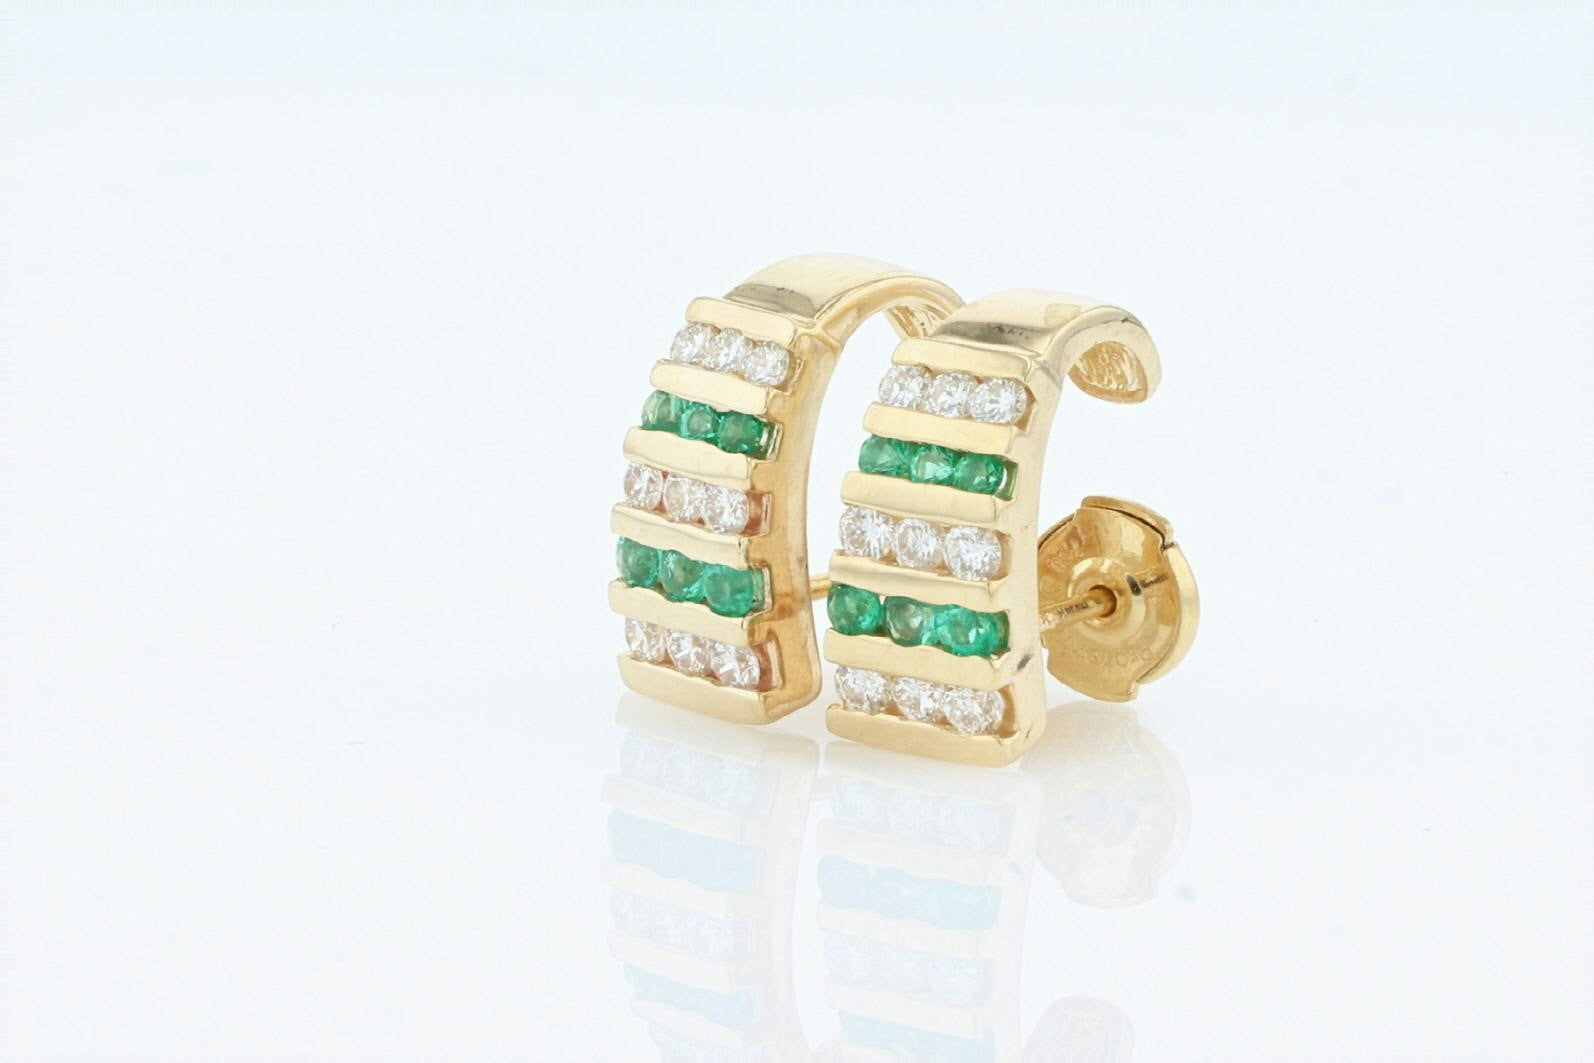 18K Women's Yellow Gold (Stamped) & 14K Yellow Gold Earrings